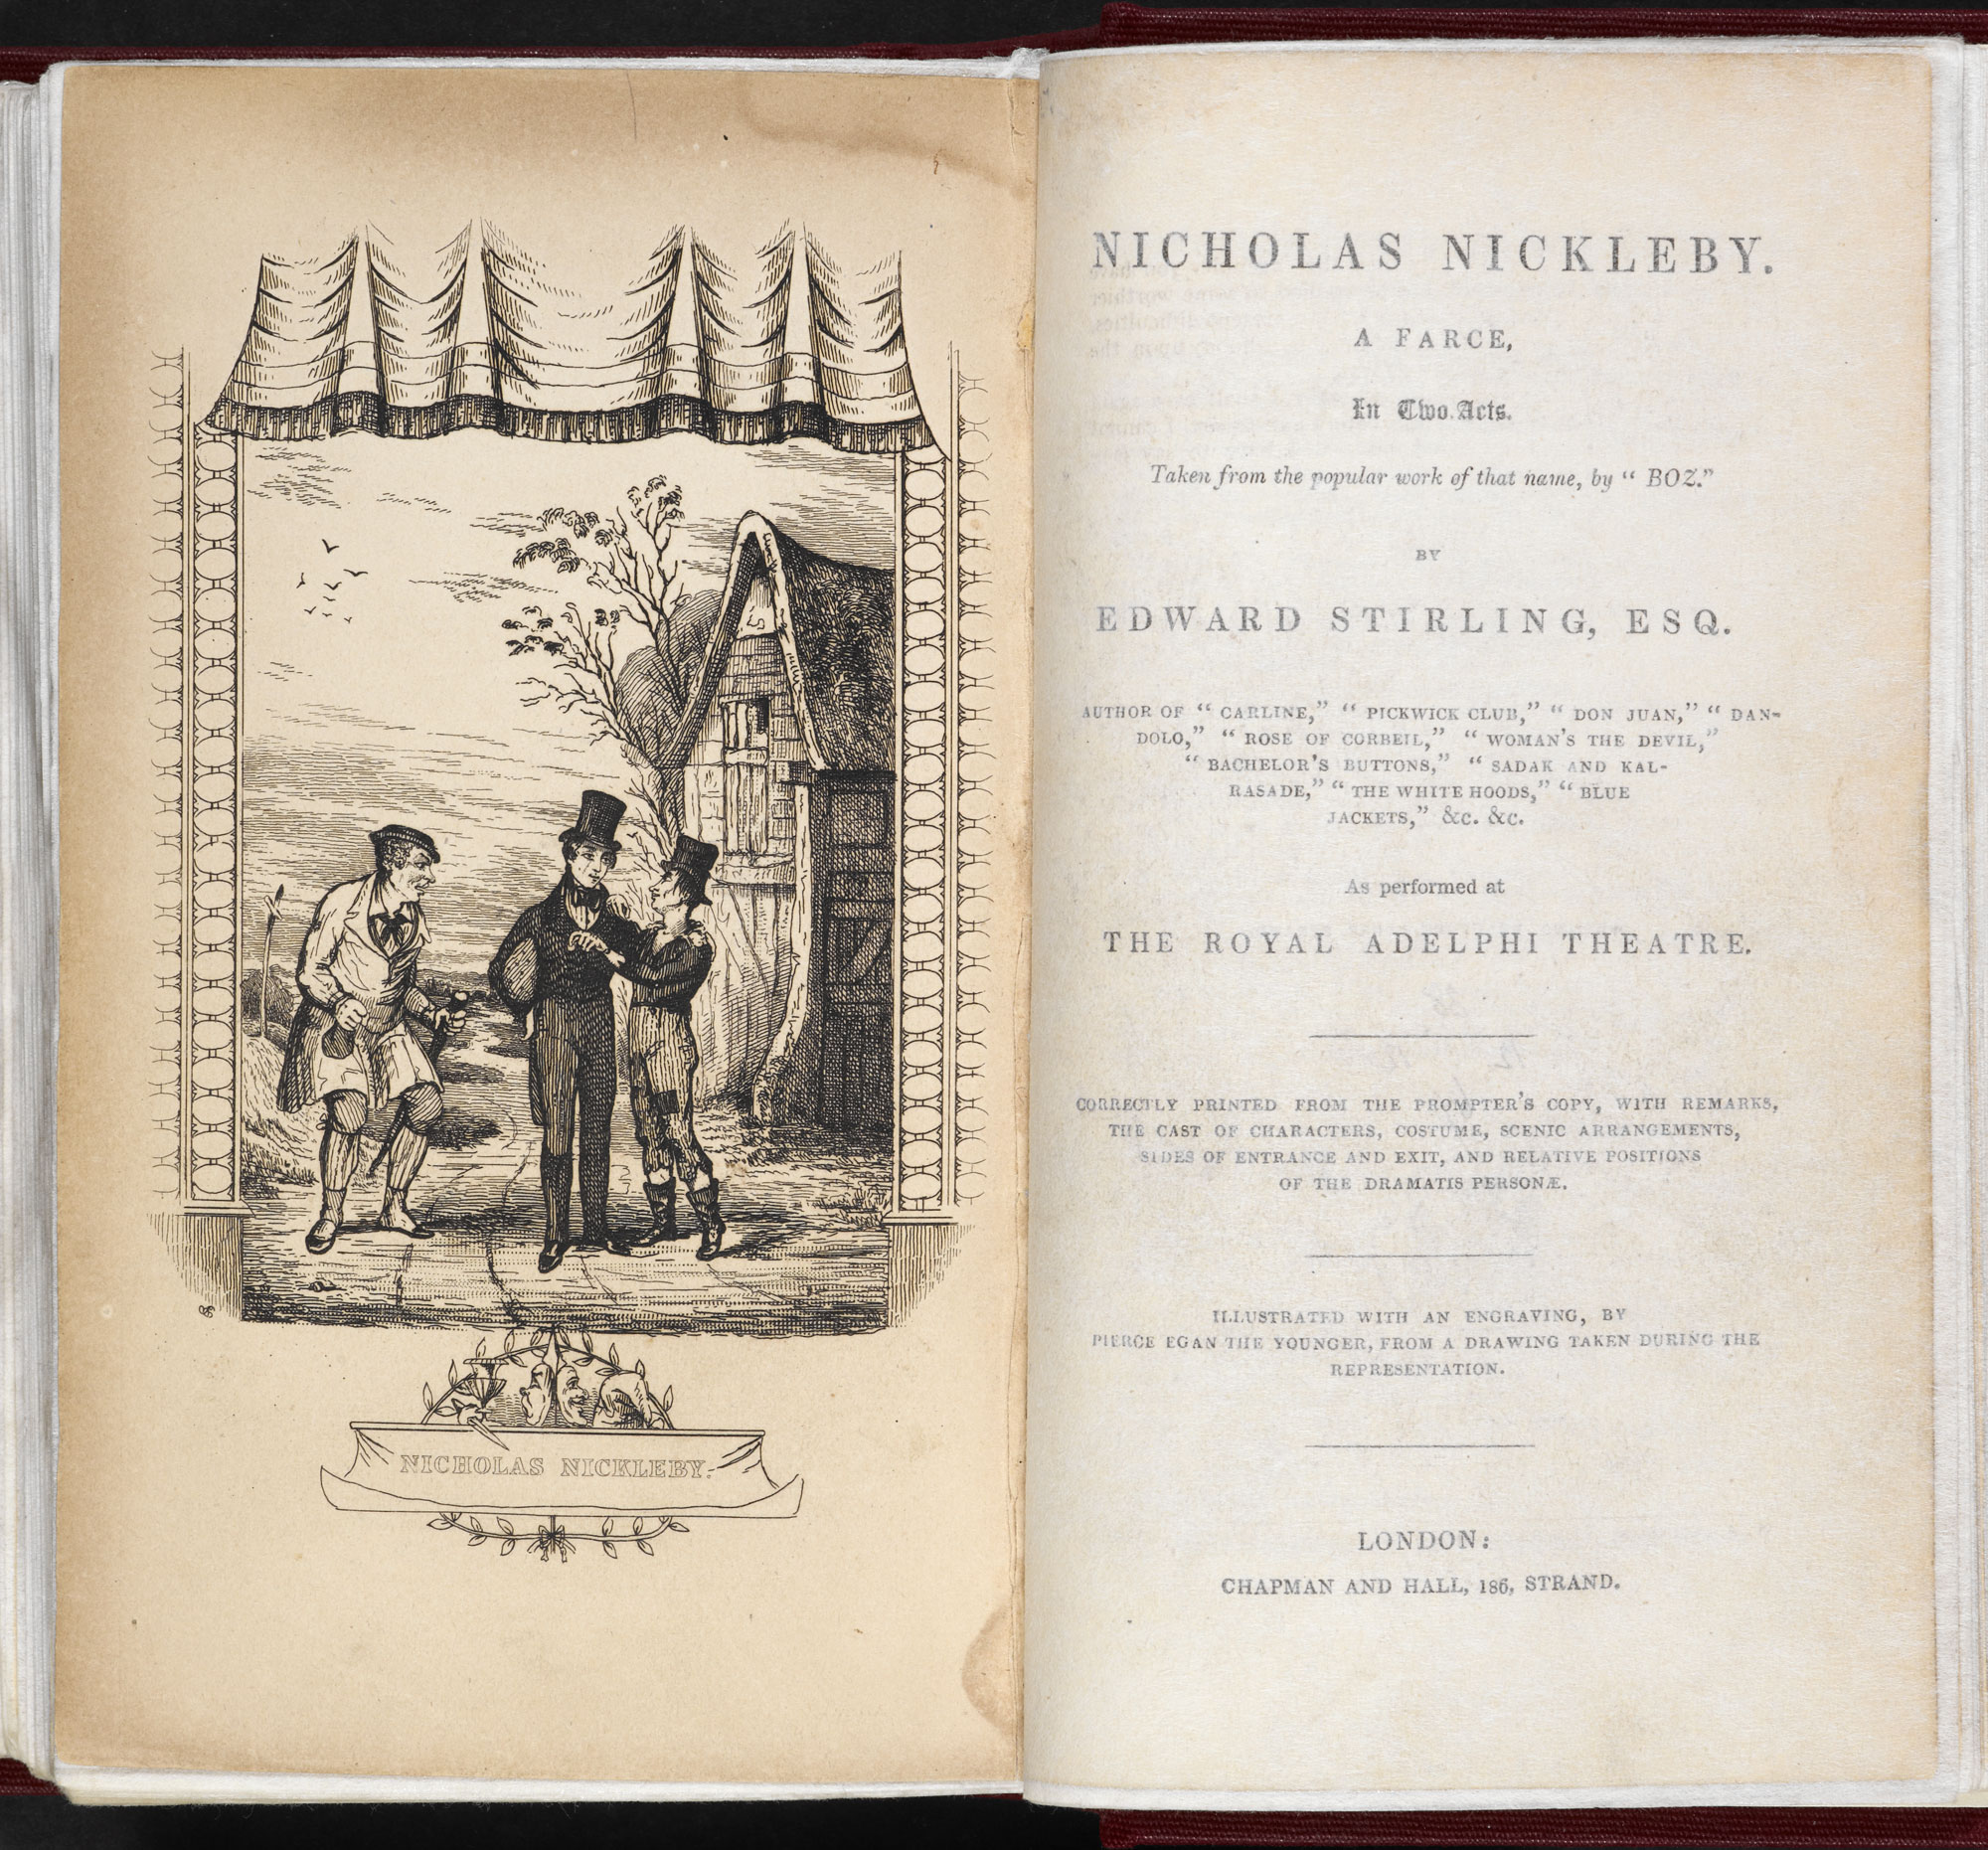 Edward Stirling's play adaptation of Nicholas Nickleby [page: frontispiece and title page]